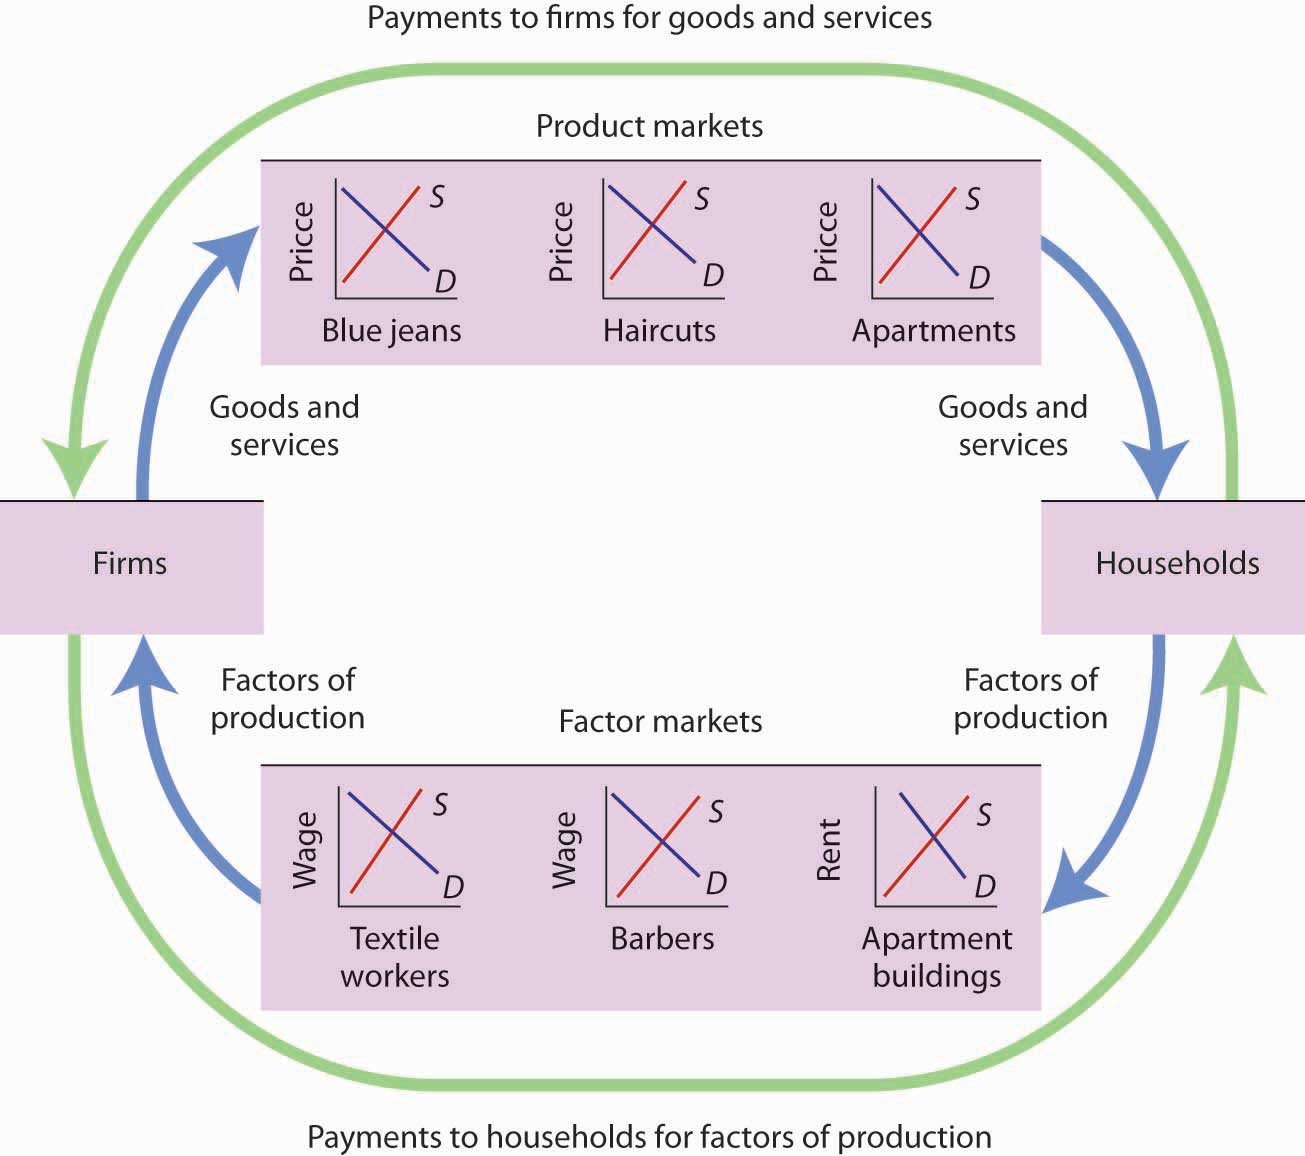 Principles of economics 10 flatworld this simplified circular flow model shows flows of spending between households and firms through product and factor markets the inner arrows show goods and ccuart Image collections